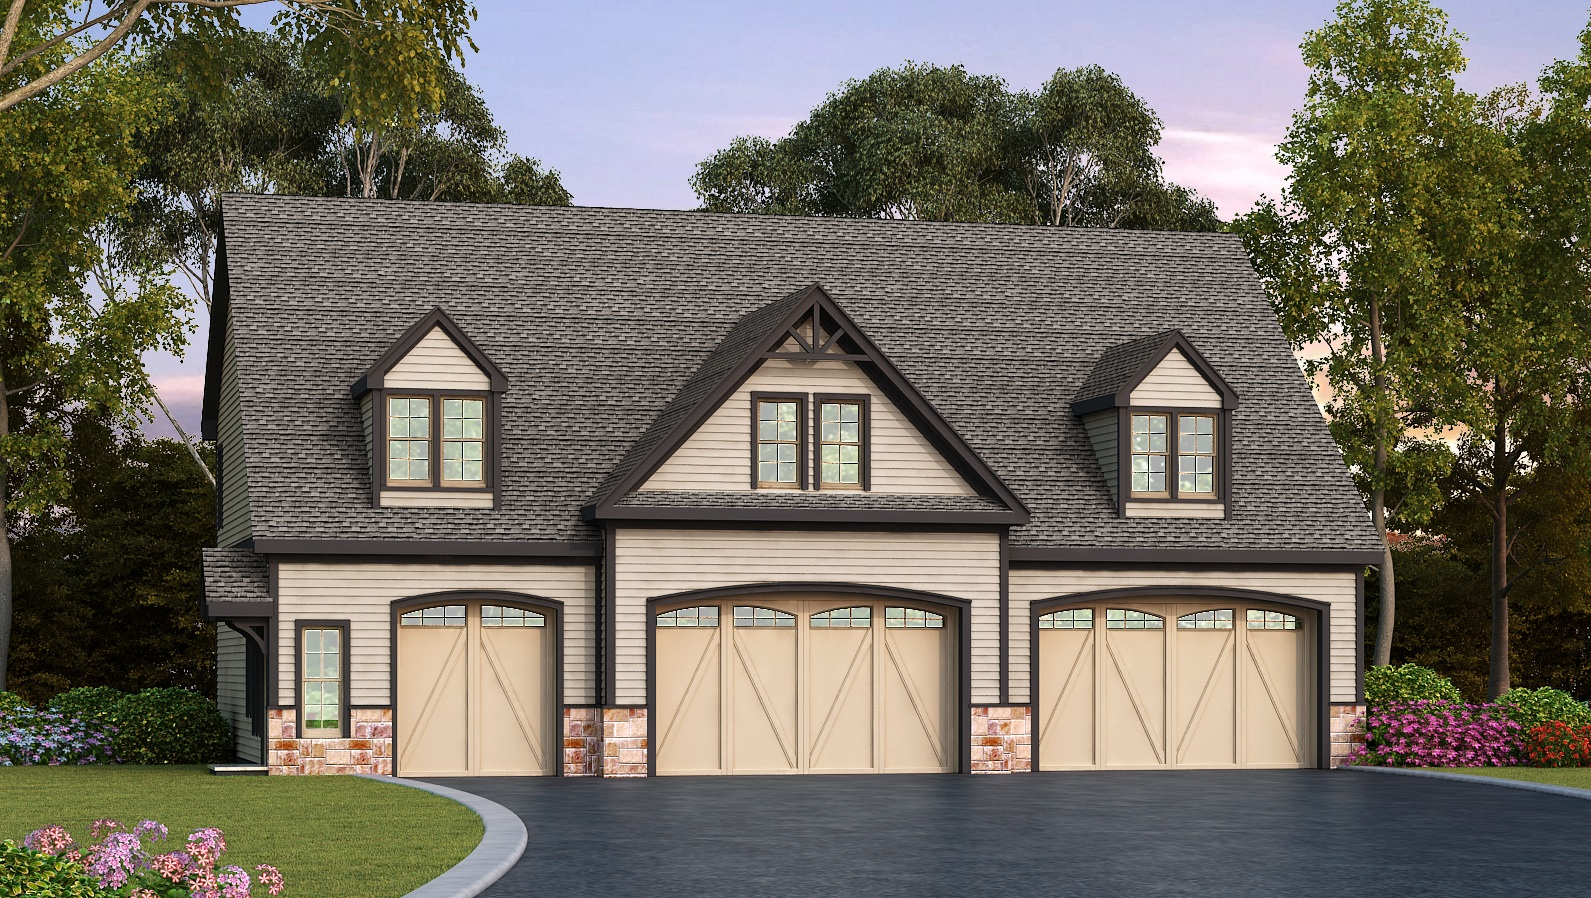 Residential 3 bay garage plan 29870rl 2nd floor master for 2 bay garage